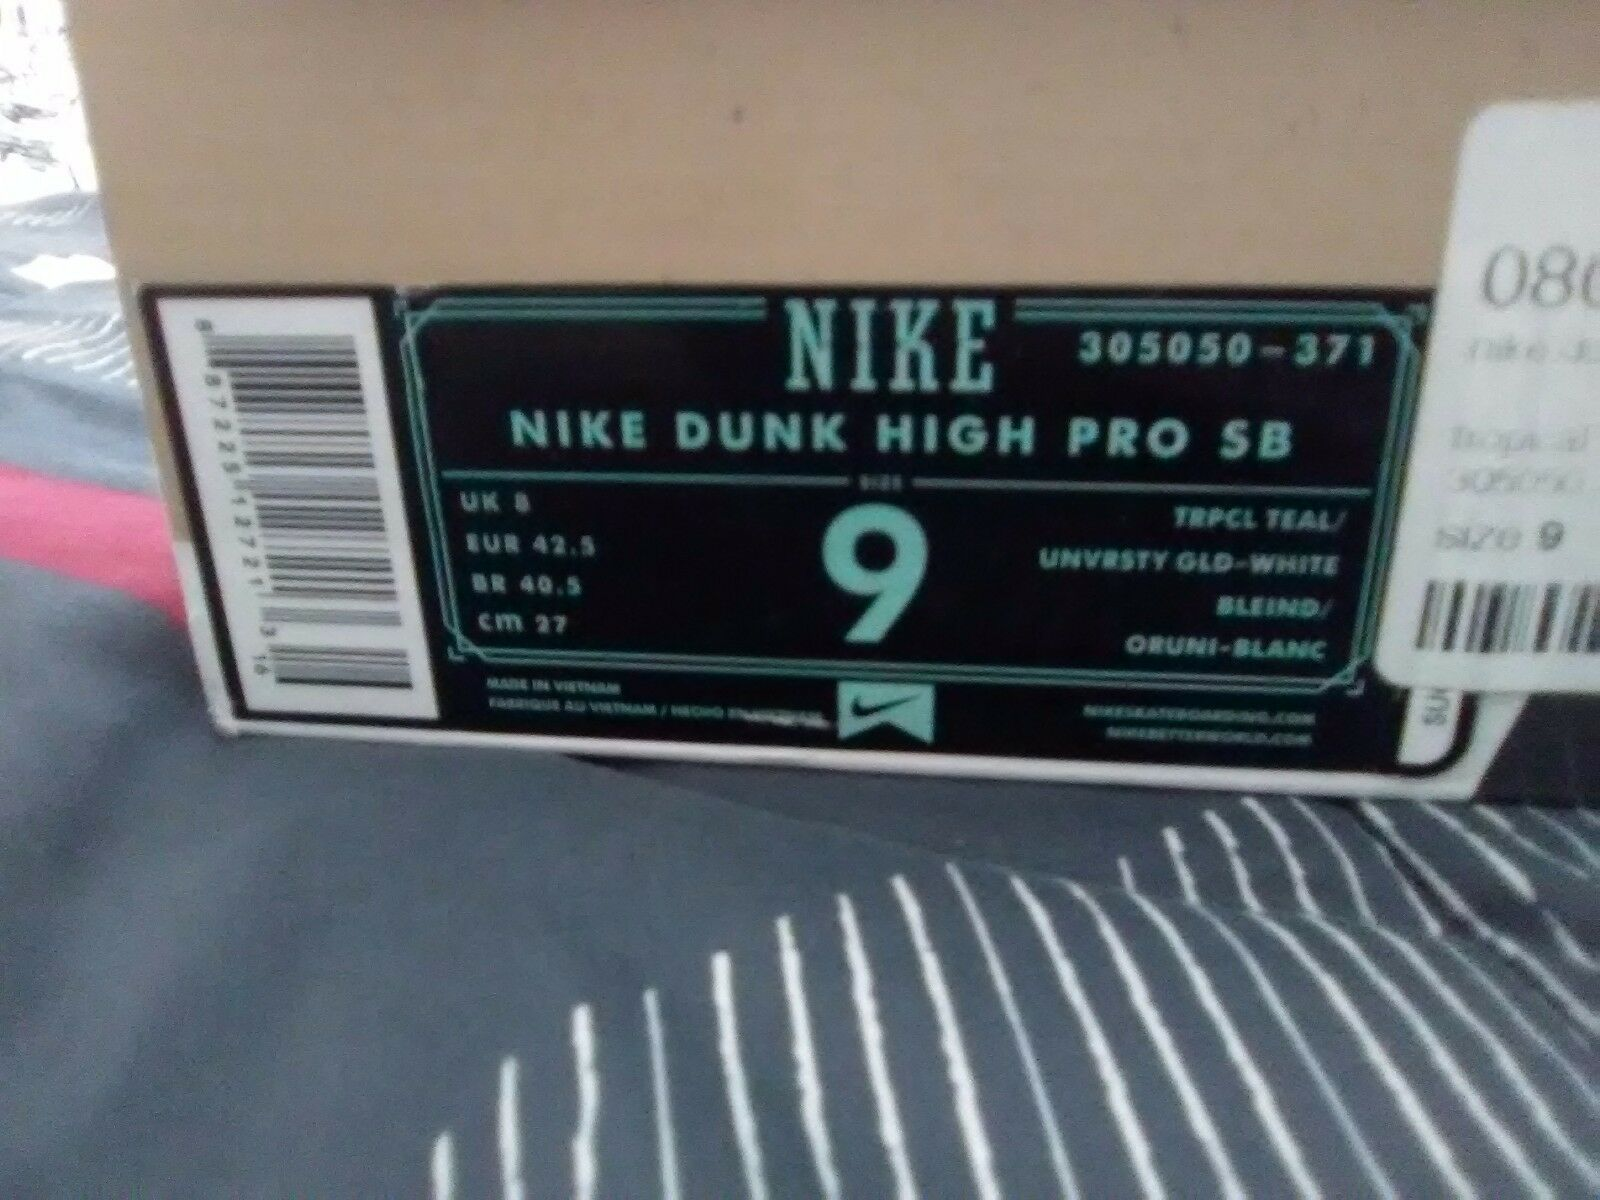 Mens Nike dunk high pro Sb size 9 trpcl teal